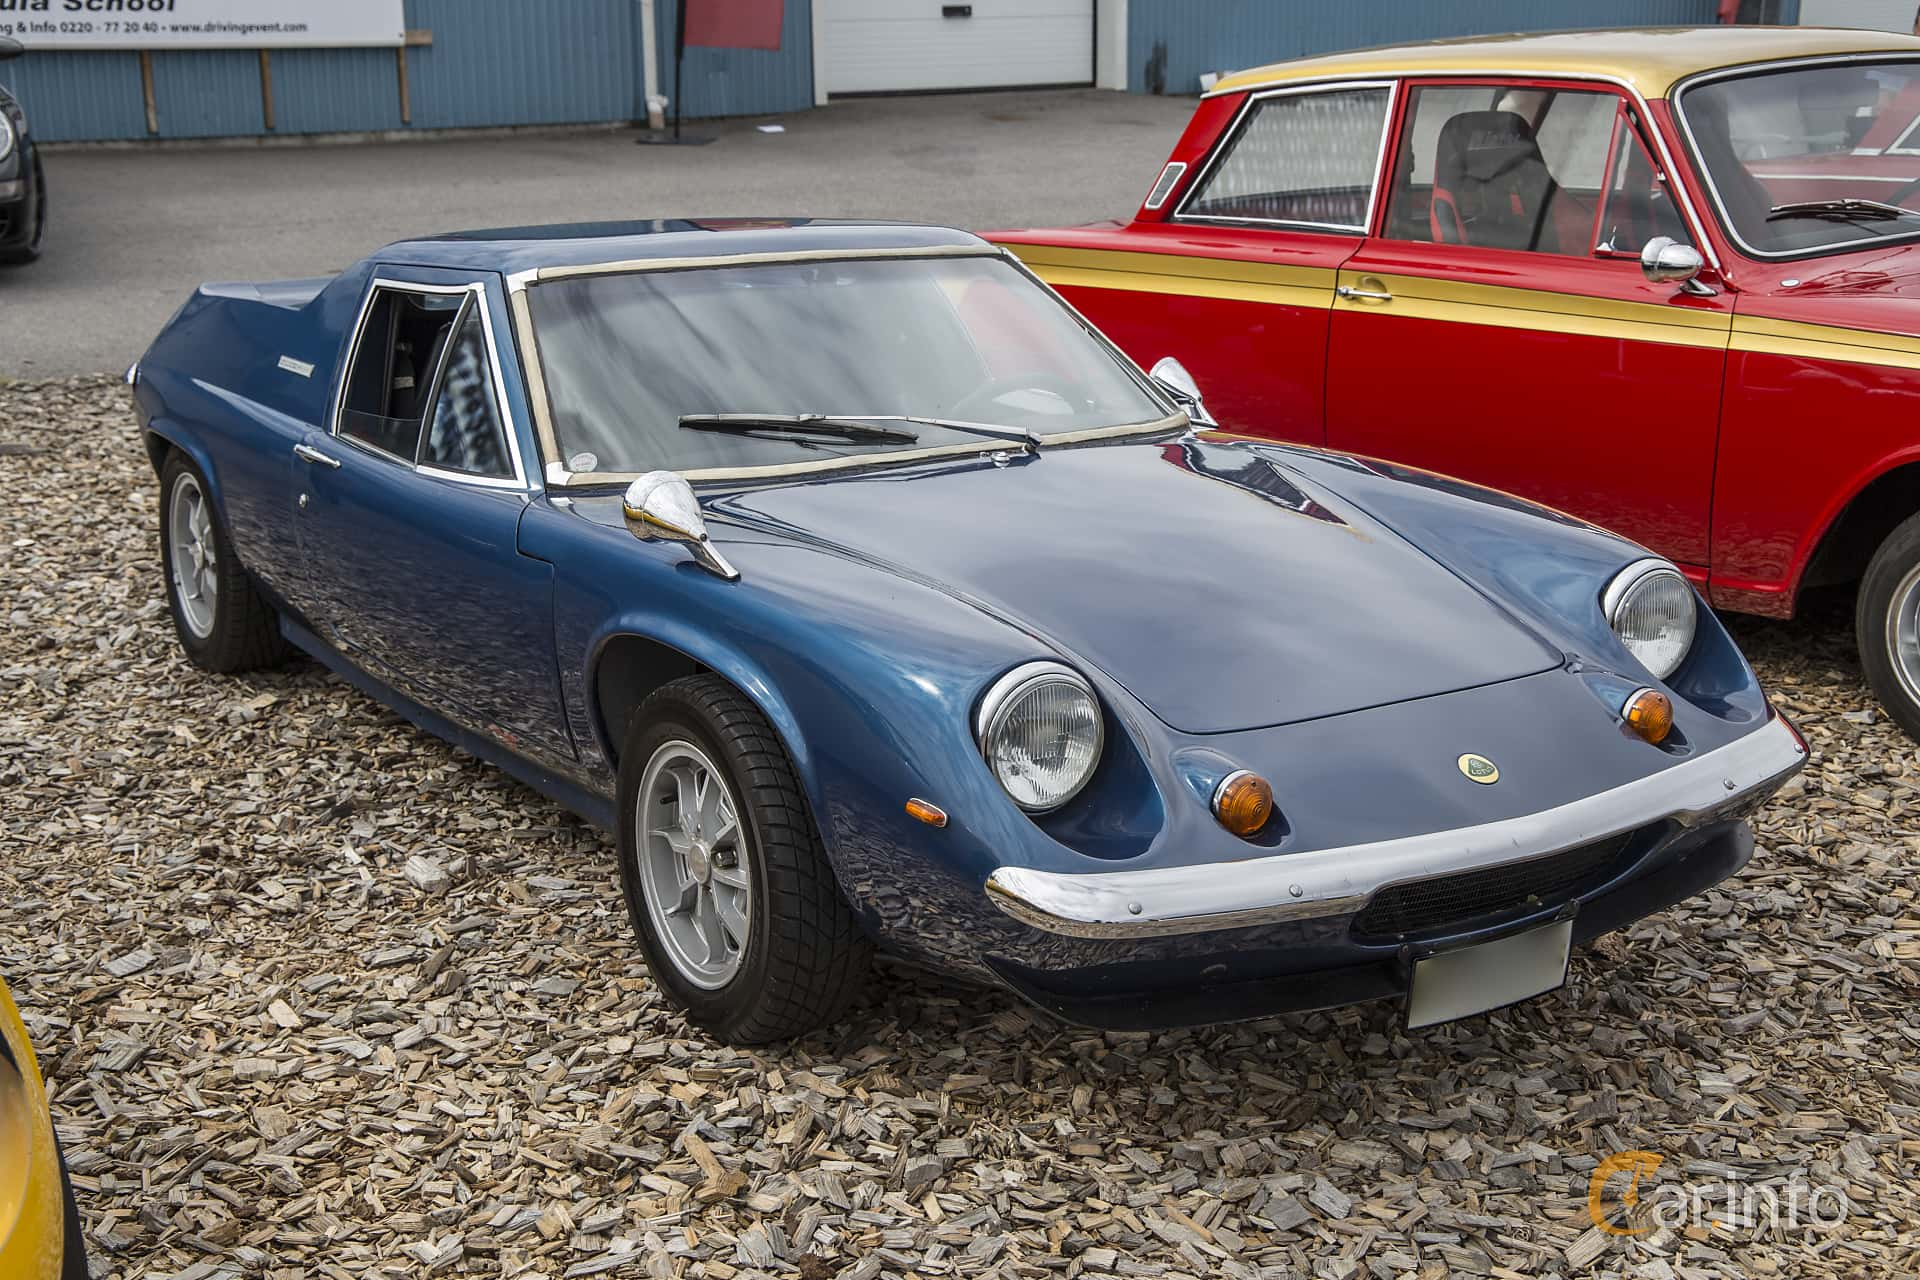 3 images of Lotus Europa Twin Cam 1.6 Manual, 105hp, 1972 by Pelle